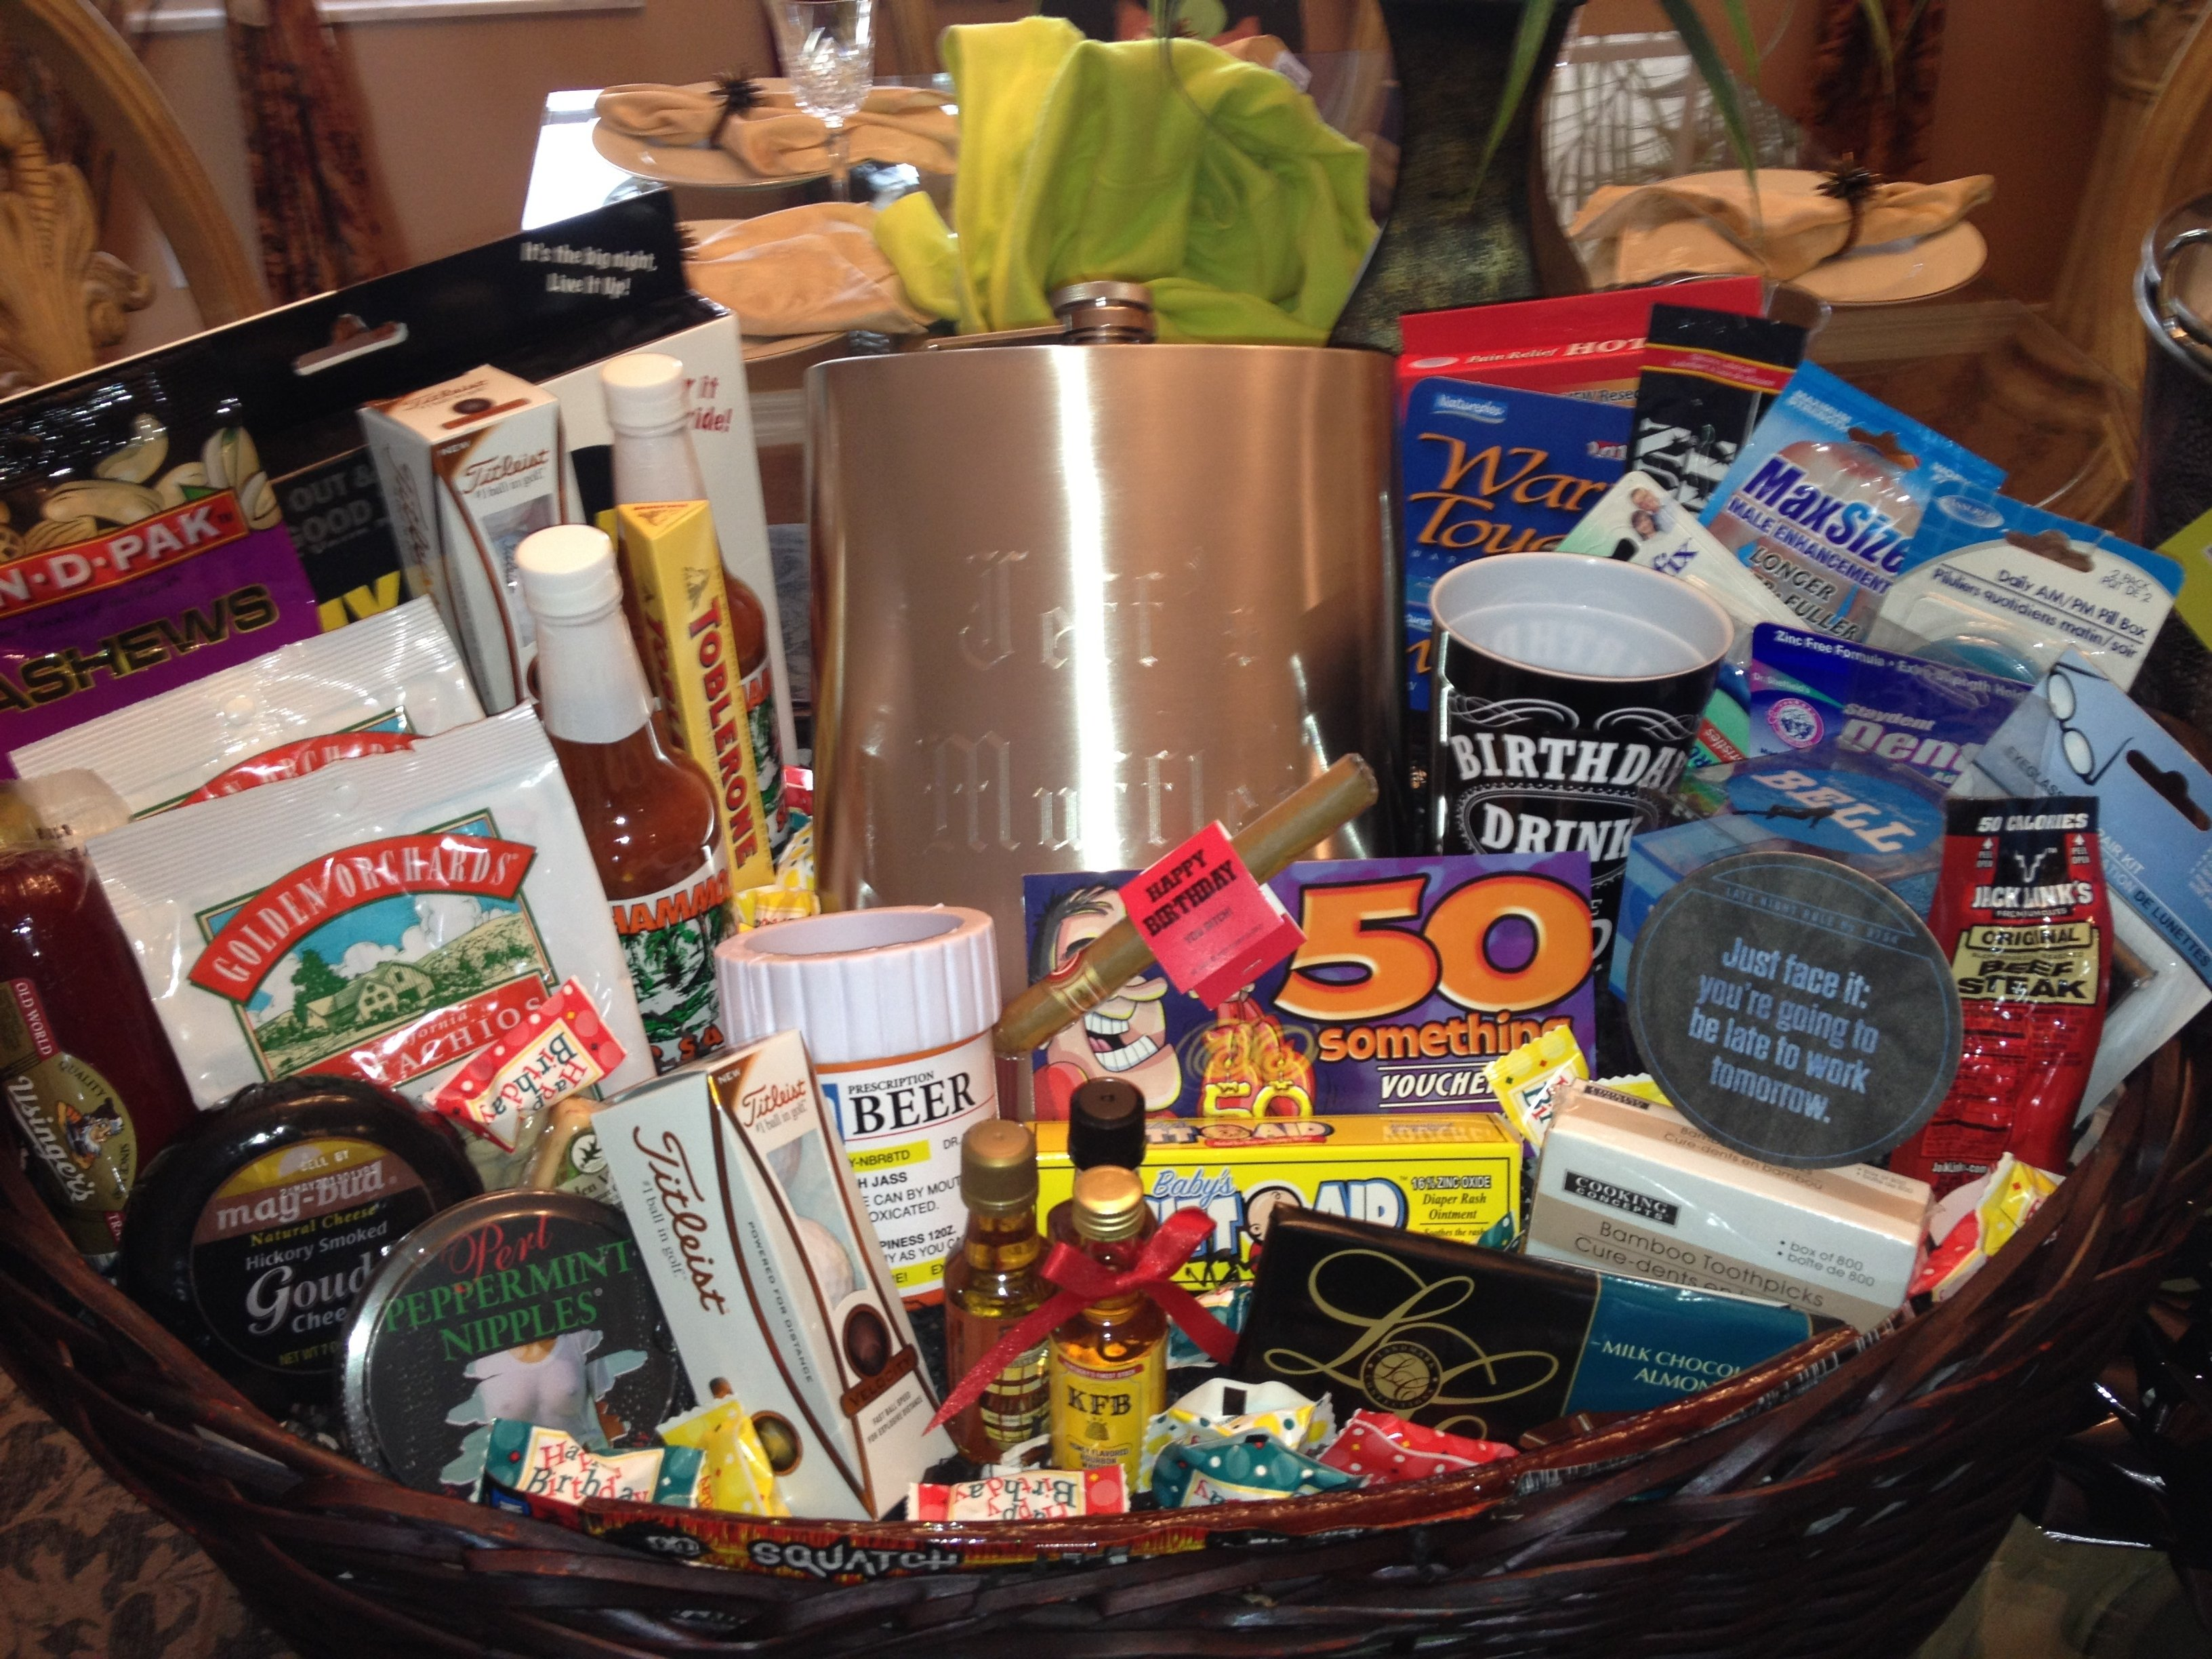 10 Cute Gift Baskets For Men Ideas 50th Birthday Basket Him